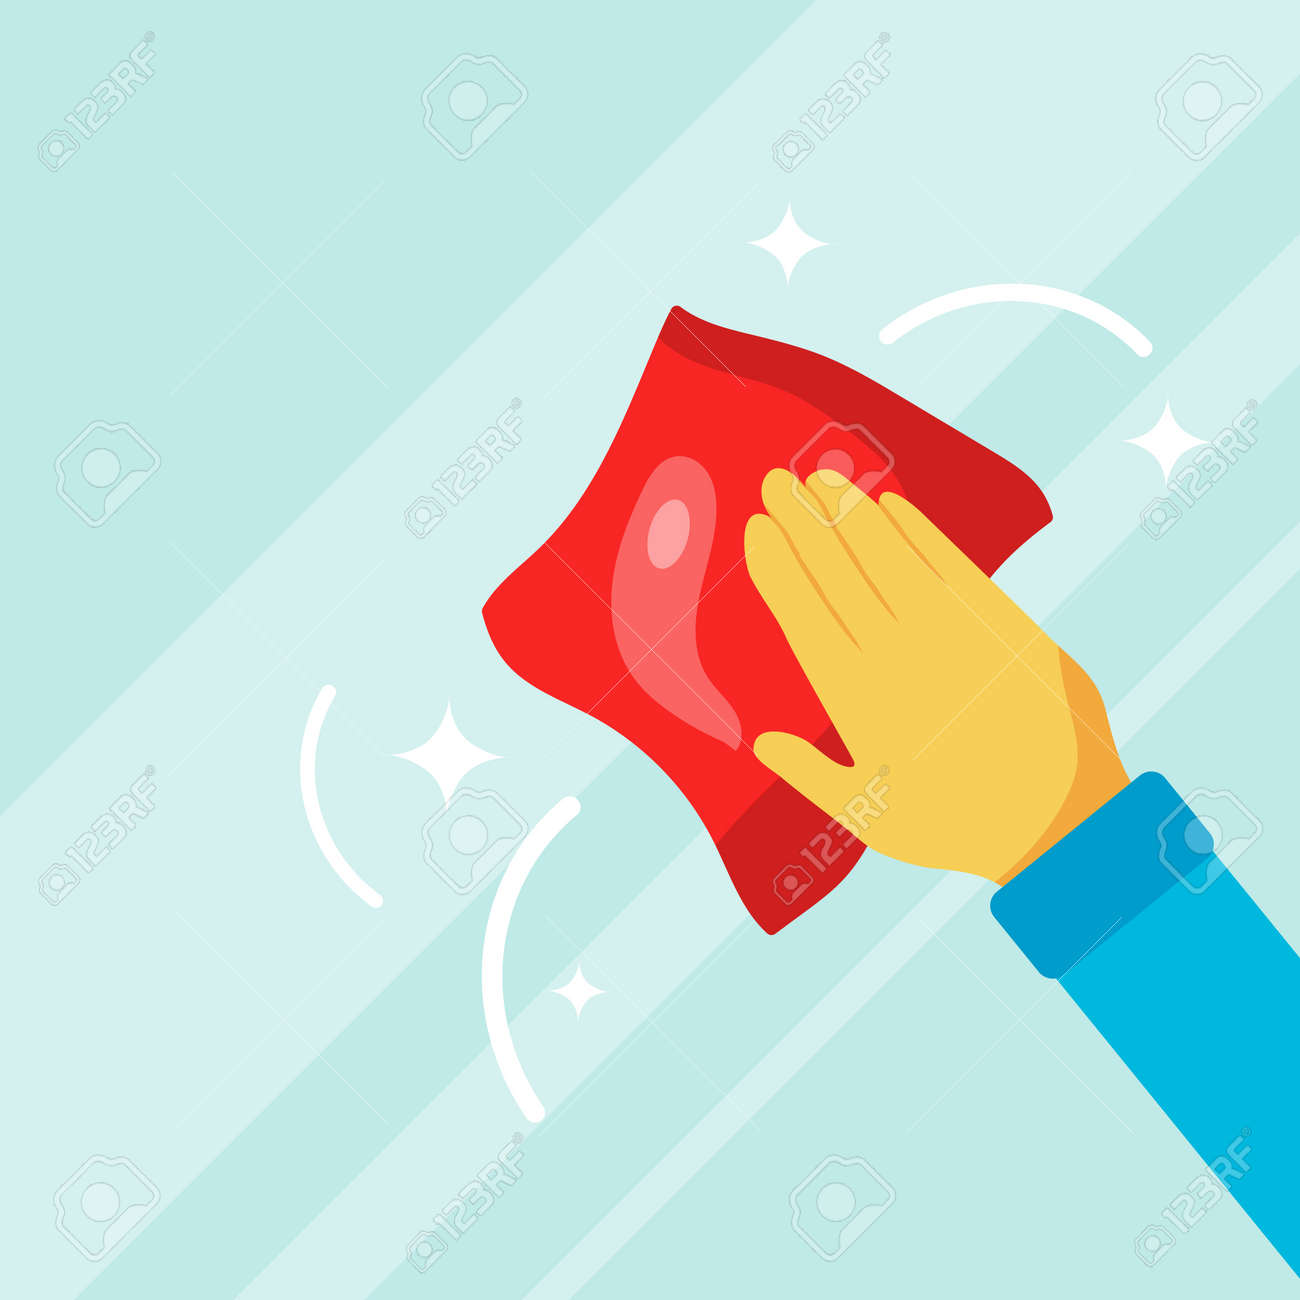 A hand with a rag washes the glass. Wipe down the glass. Vector illustration. Vector. - 167579103